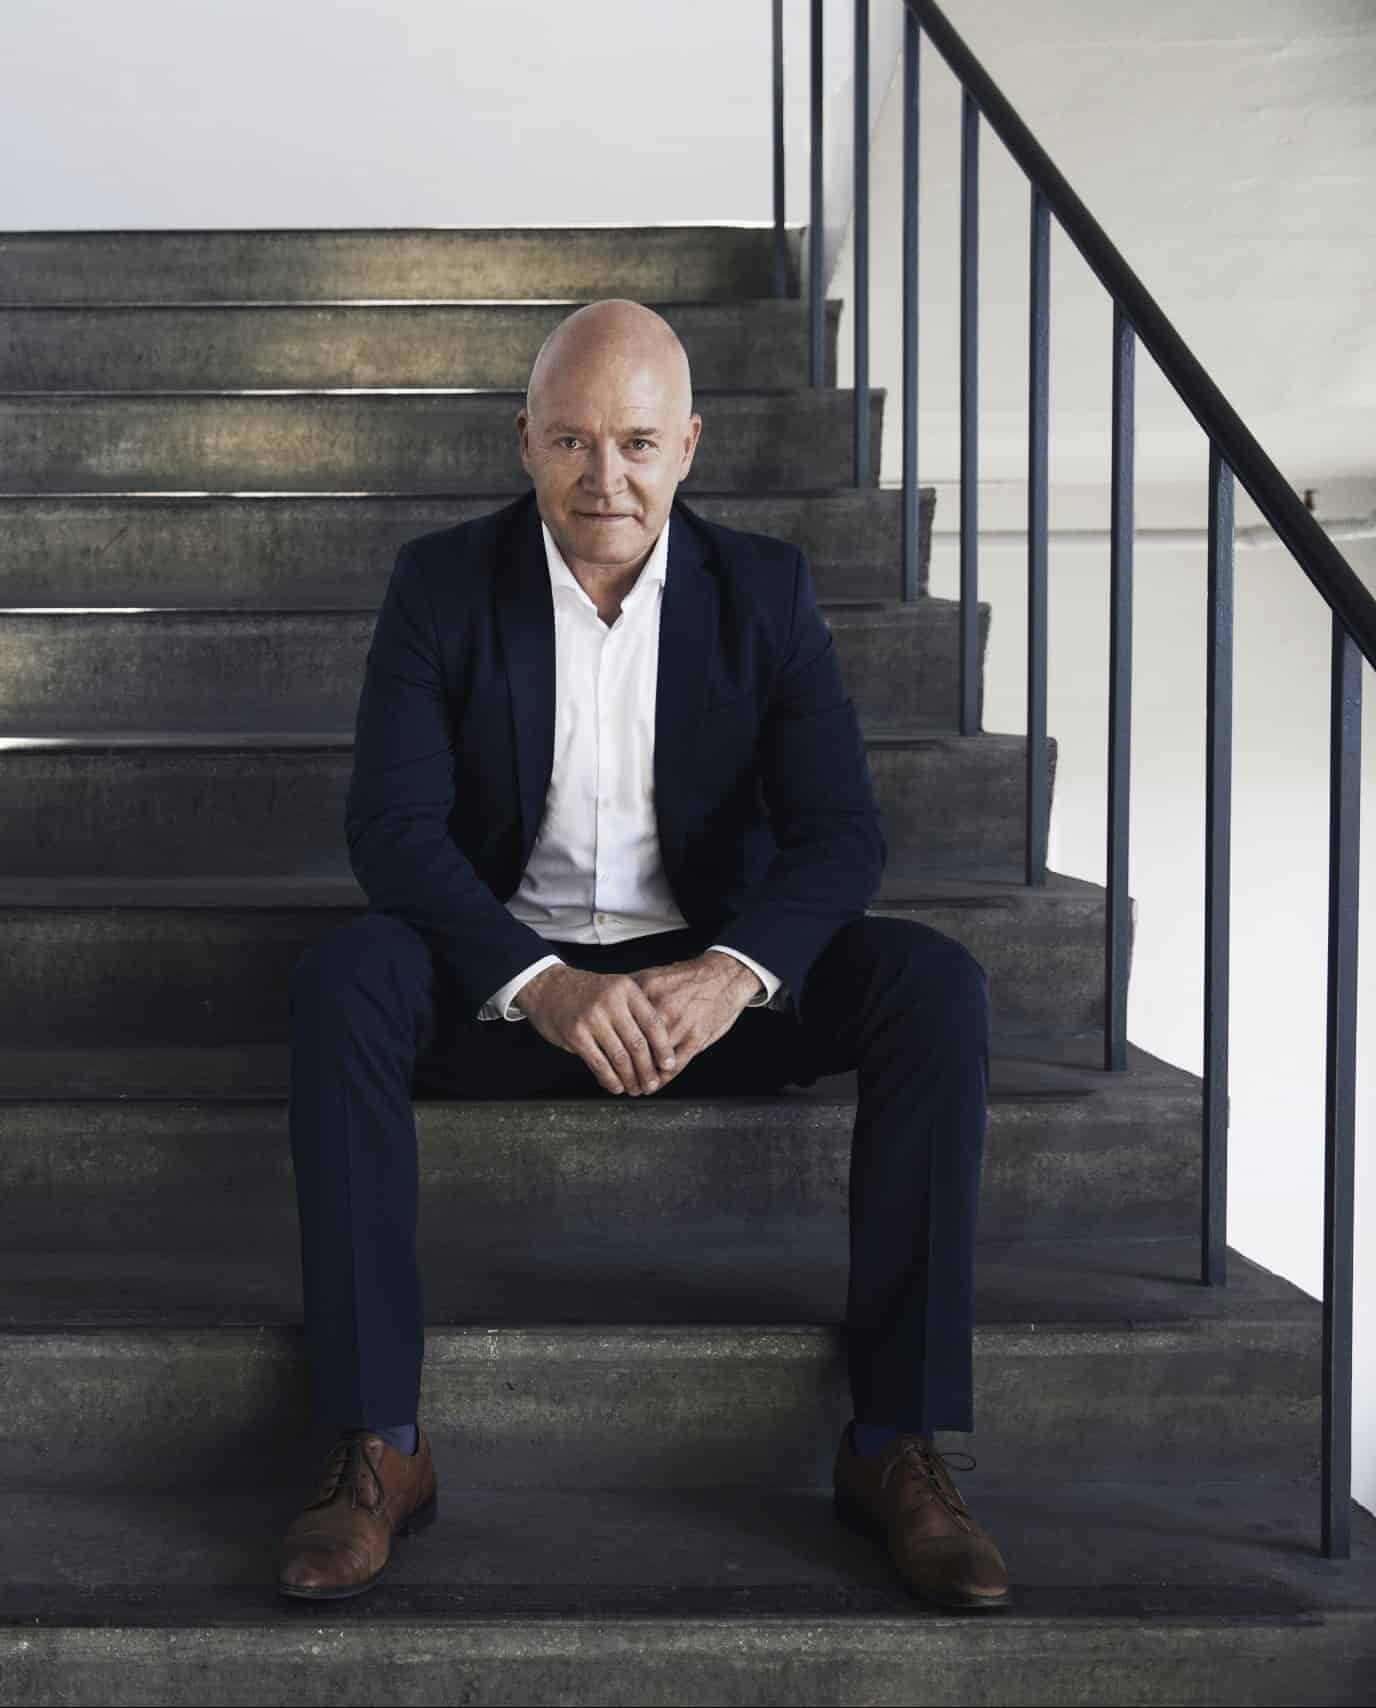 Photo of Jakob Knudsen, Chief Executive Officer